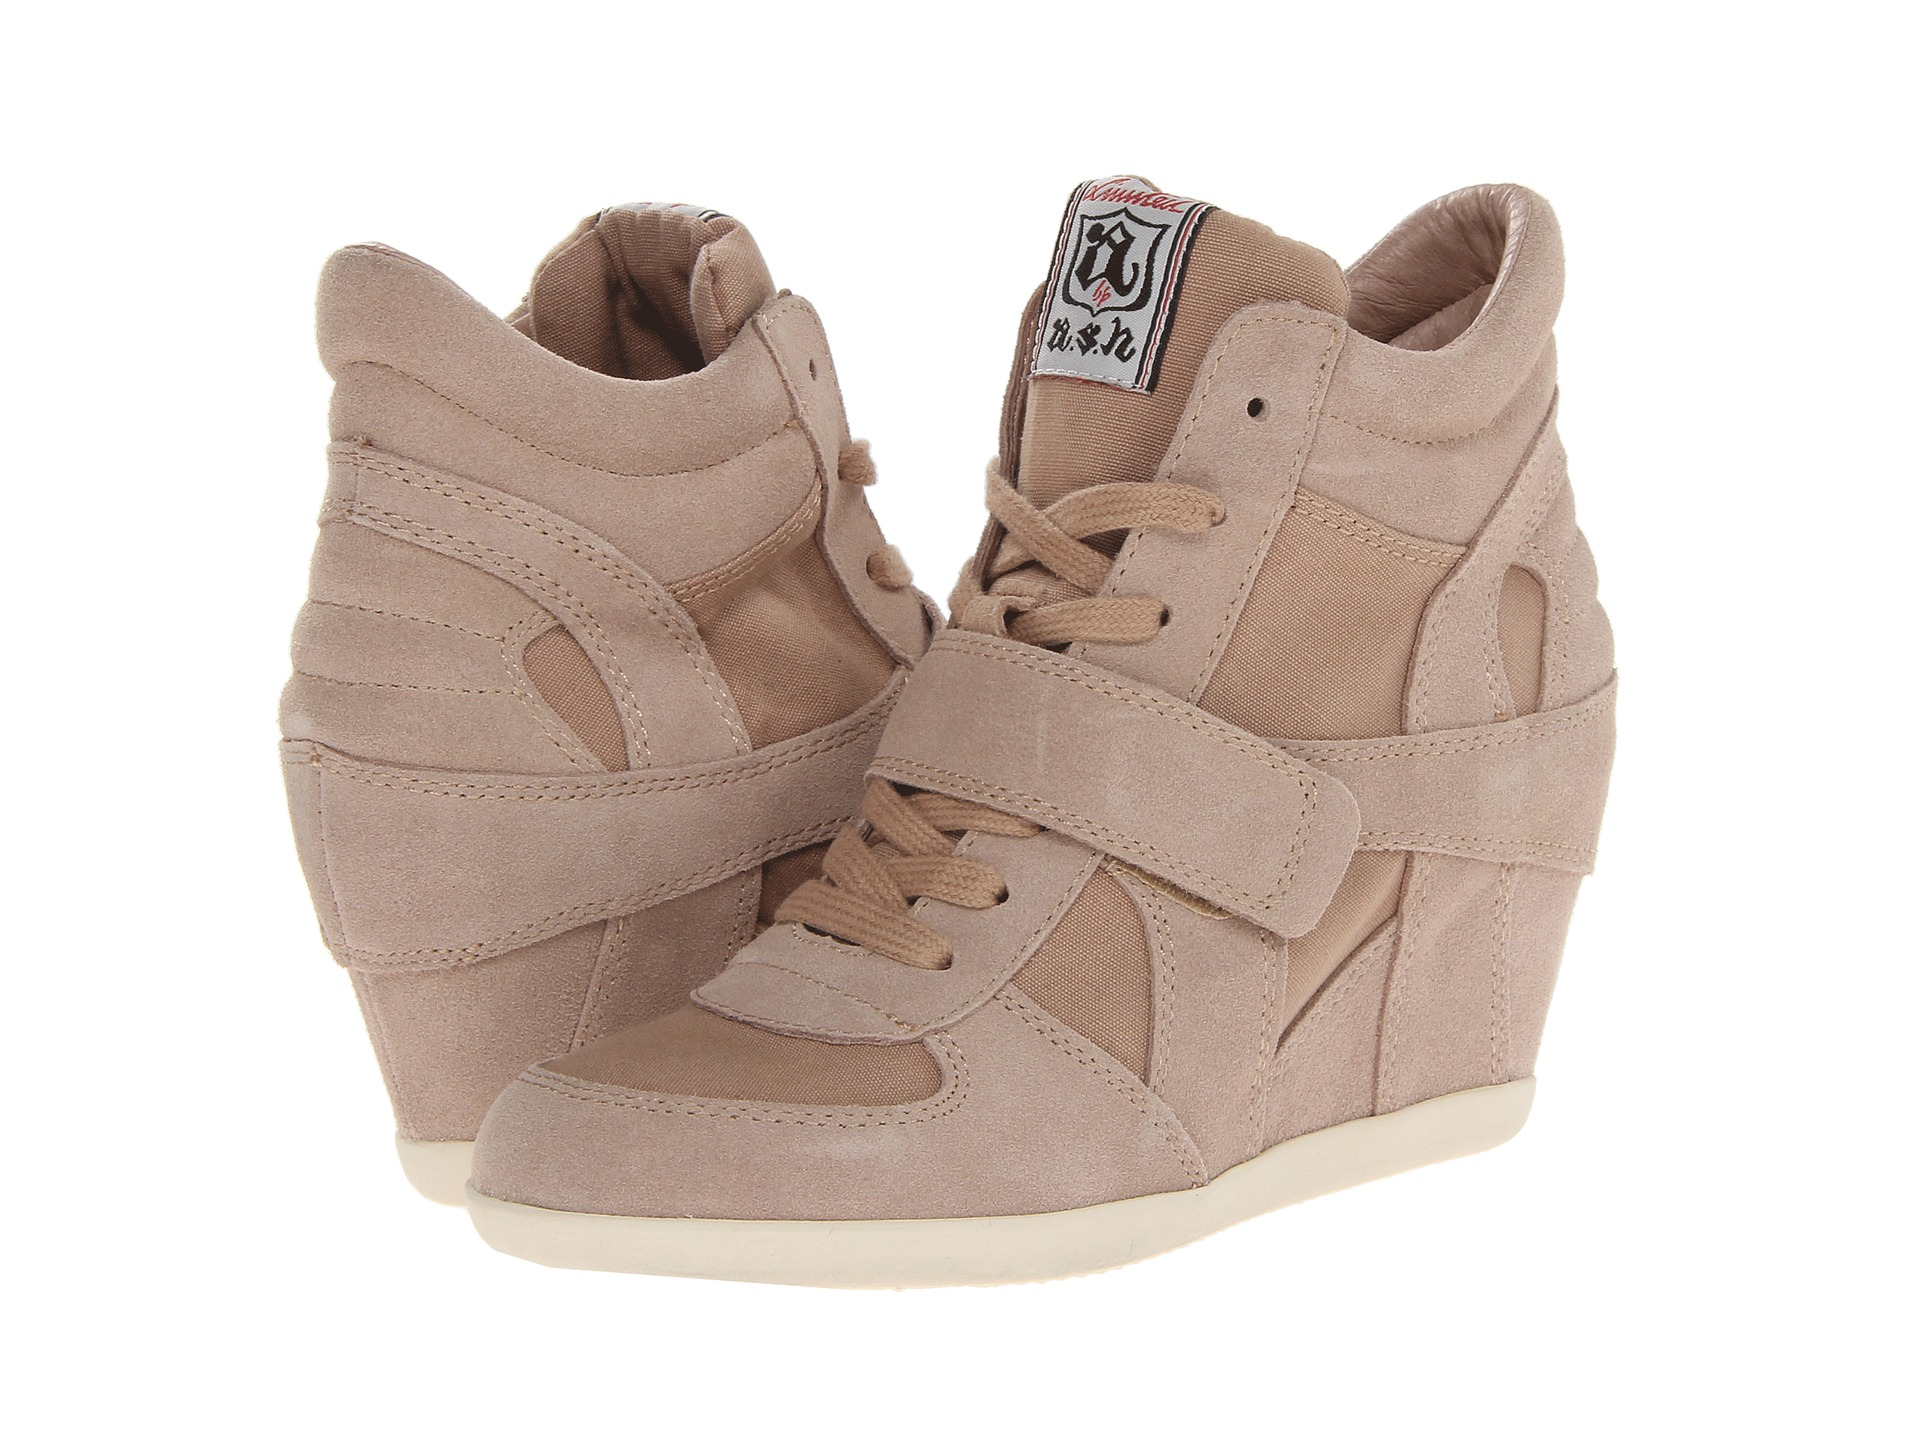 the gallery for gt wedges sneakers for kids